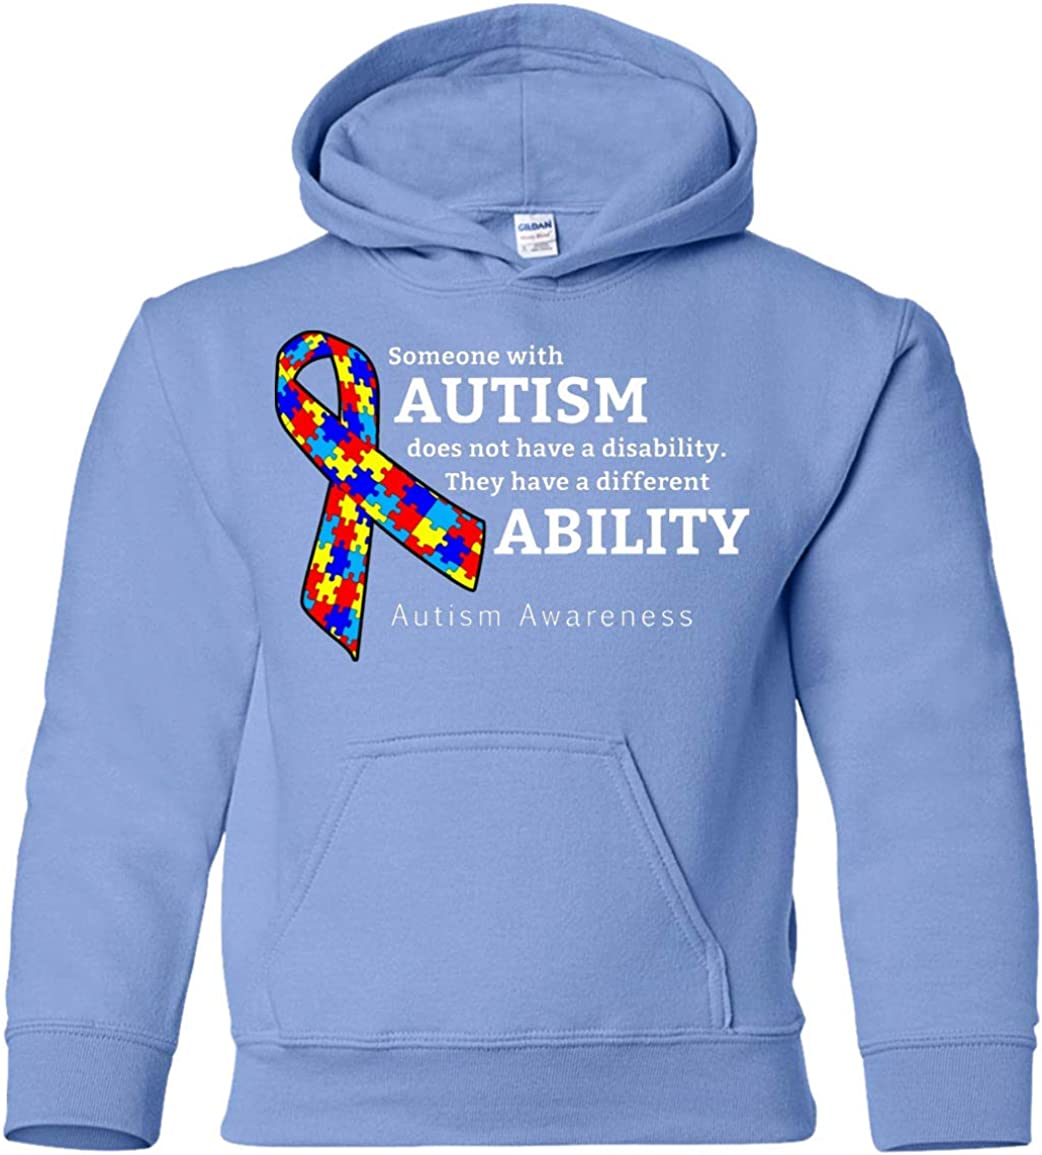 Autism Awareness Kids Cheap sale Pullover Hoodie Different Unisex Ability Max 56% OFF